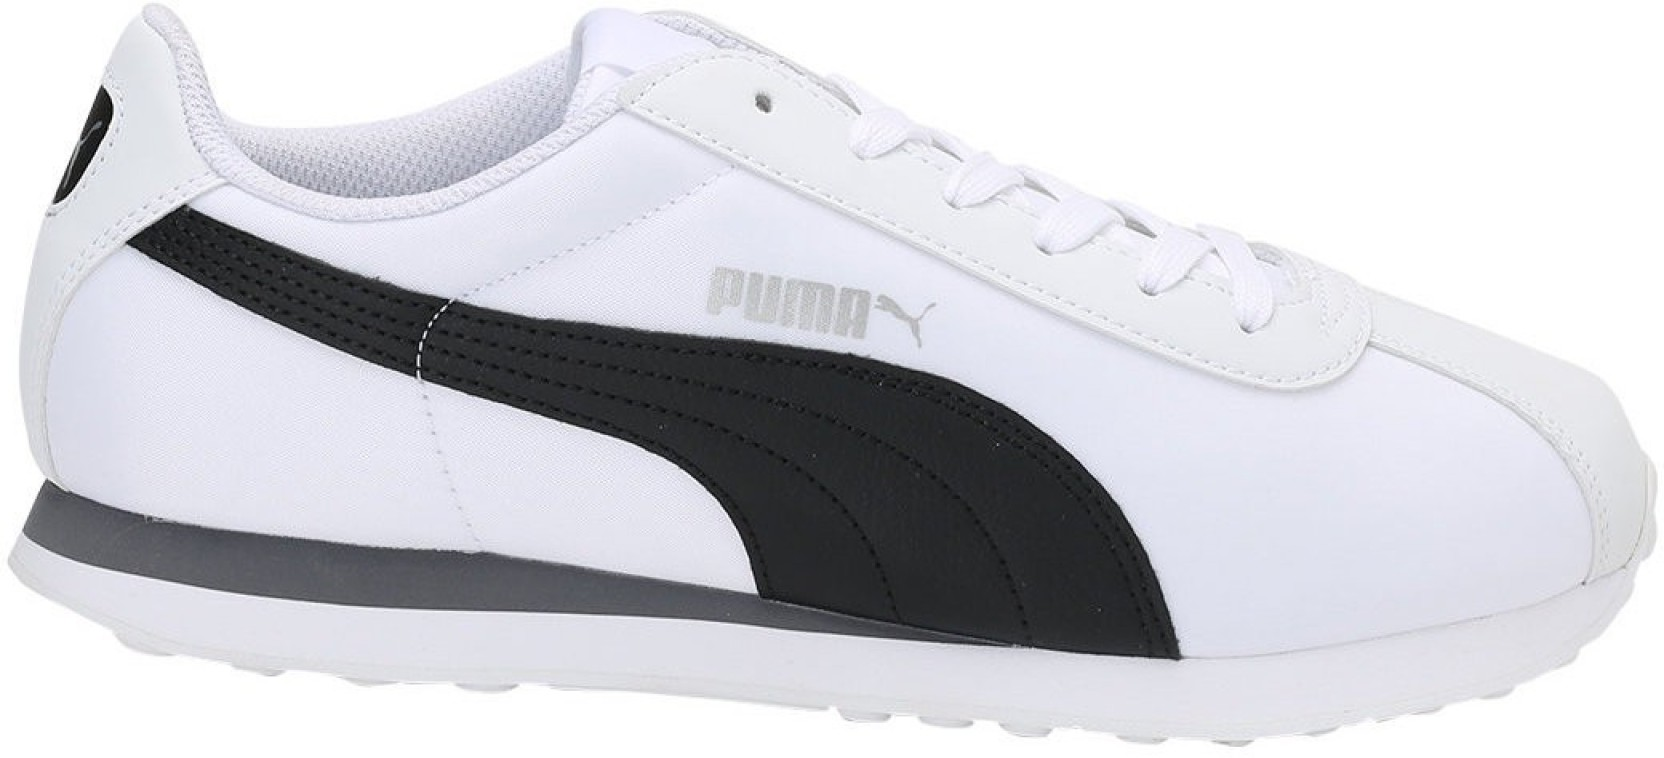 Puma Puma Turin NL Sneakers For Men - Buy Puma Puma Turin NL ... 7a6f7238b